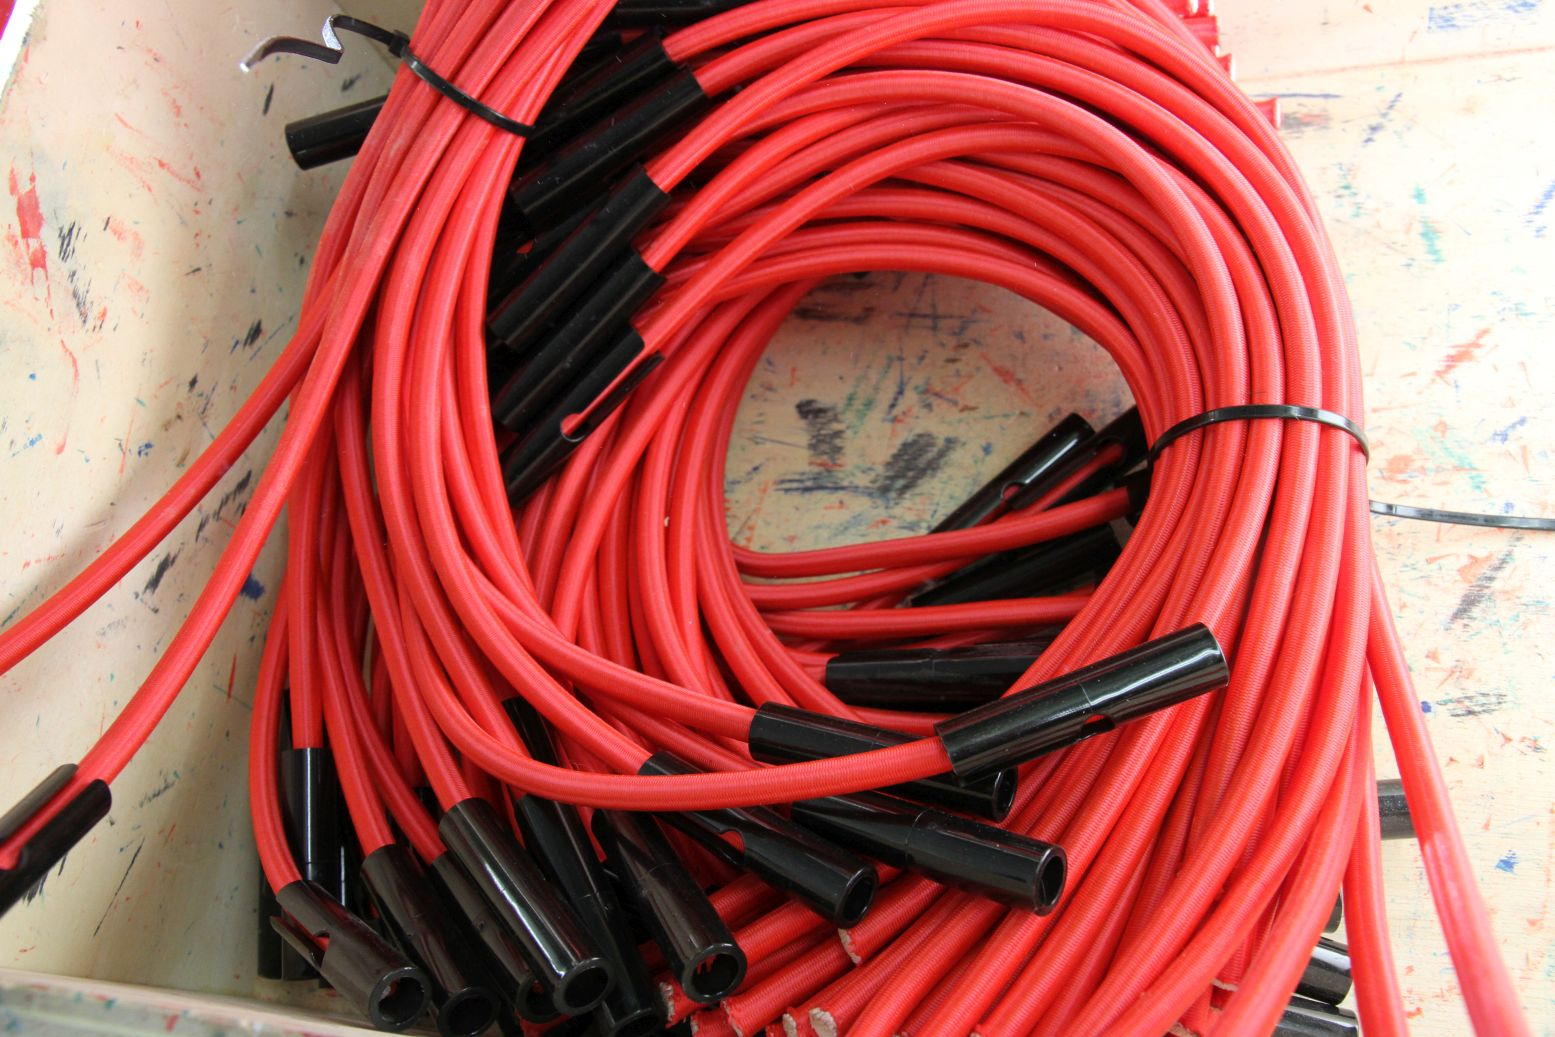 A pile of red tubing with black fasteners will be constructed in a Metalog Tools experiential learning activity or game